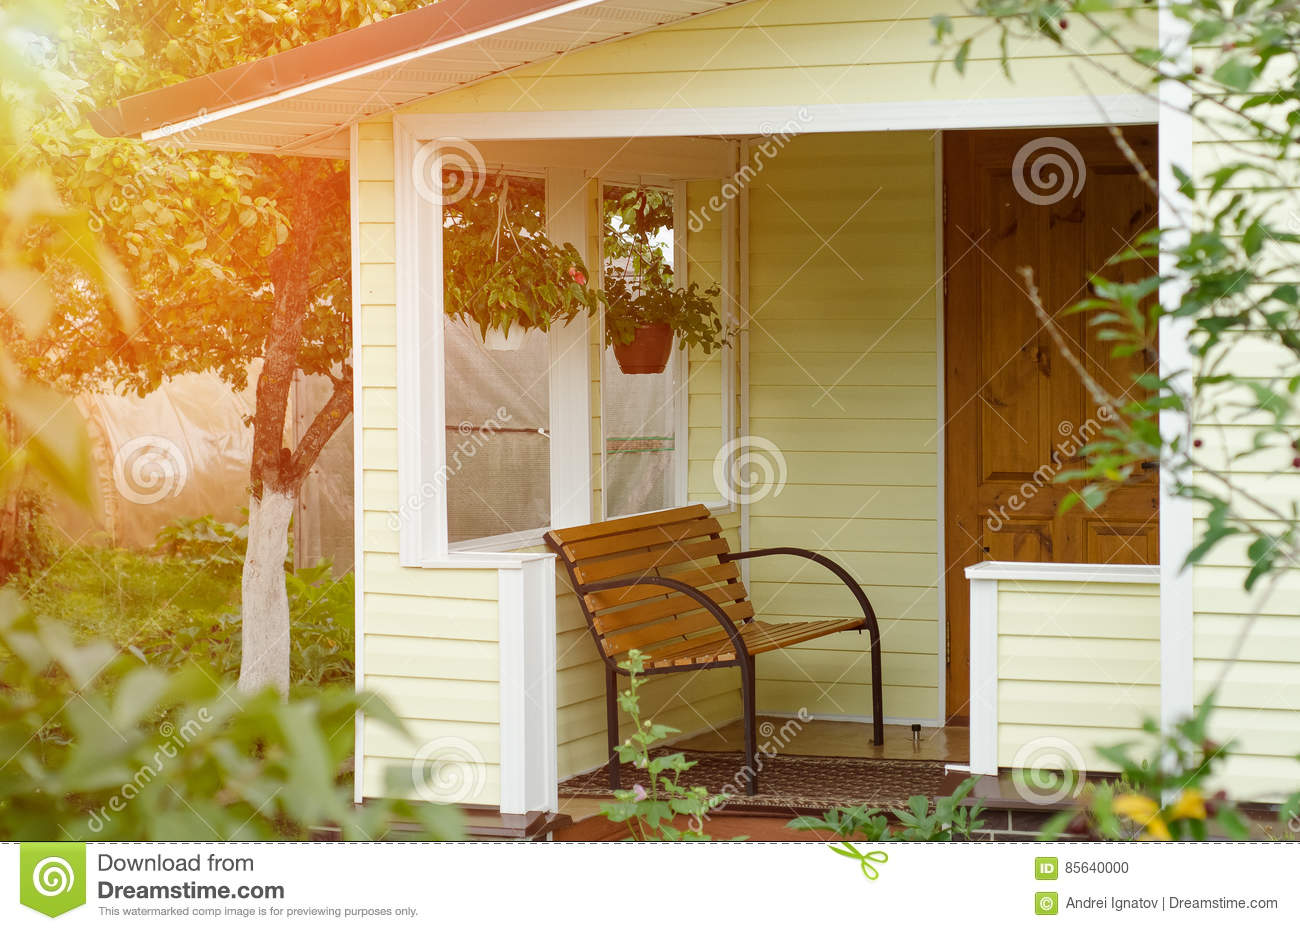 Entrance porch decorated with bench. Russian Federation